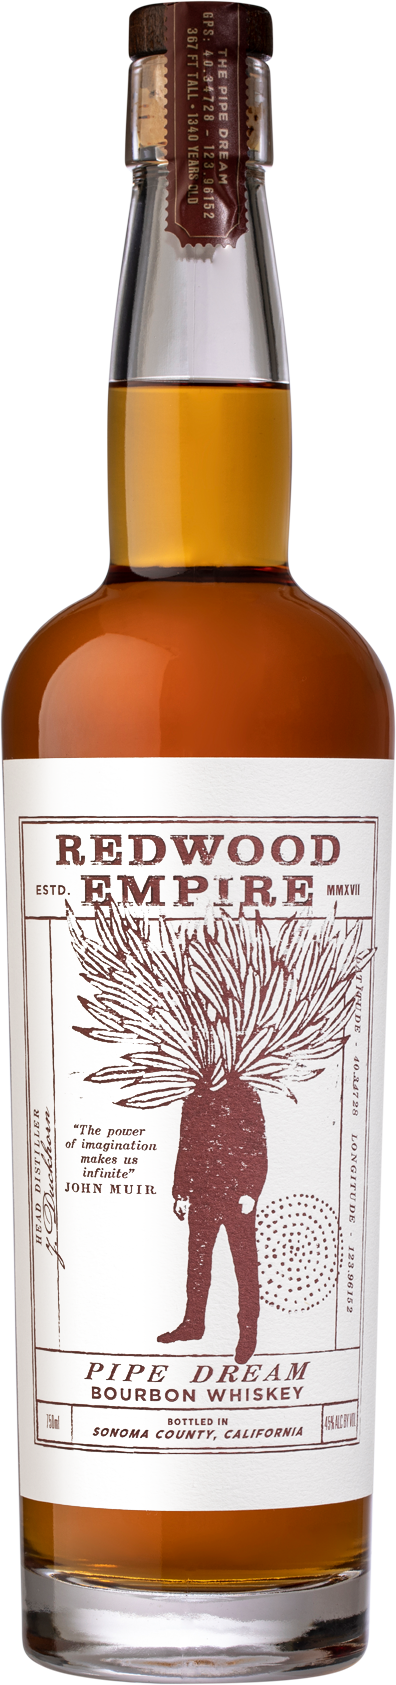 Redwood Empire - Pipe Dream - Bourbon Whiskey